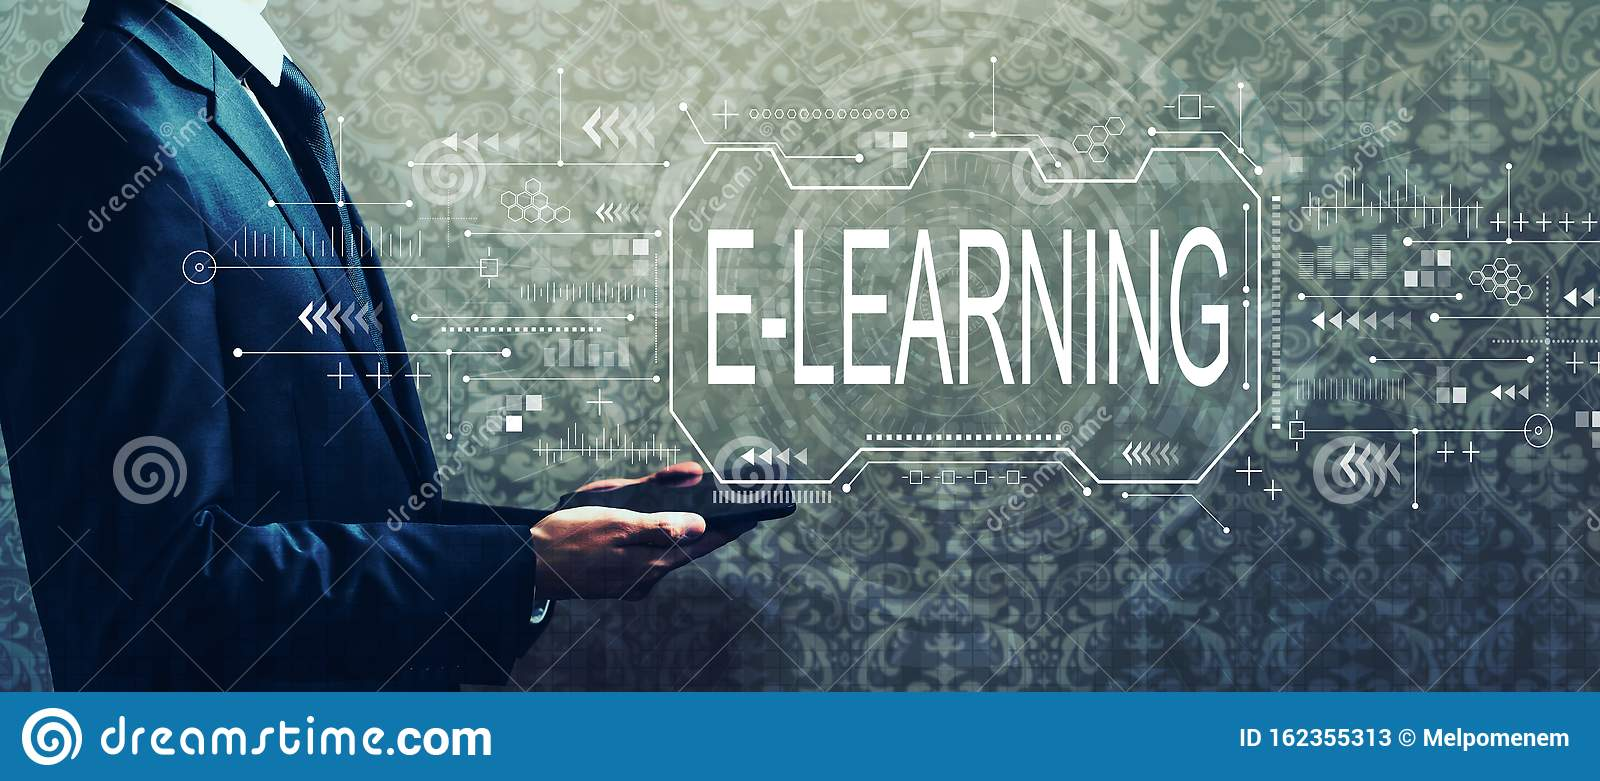 E-learning concept with businessman holding a tablet